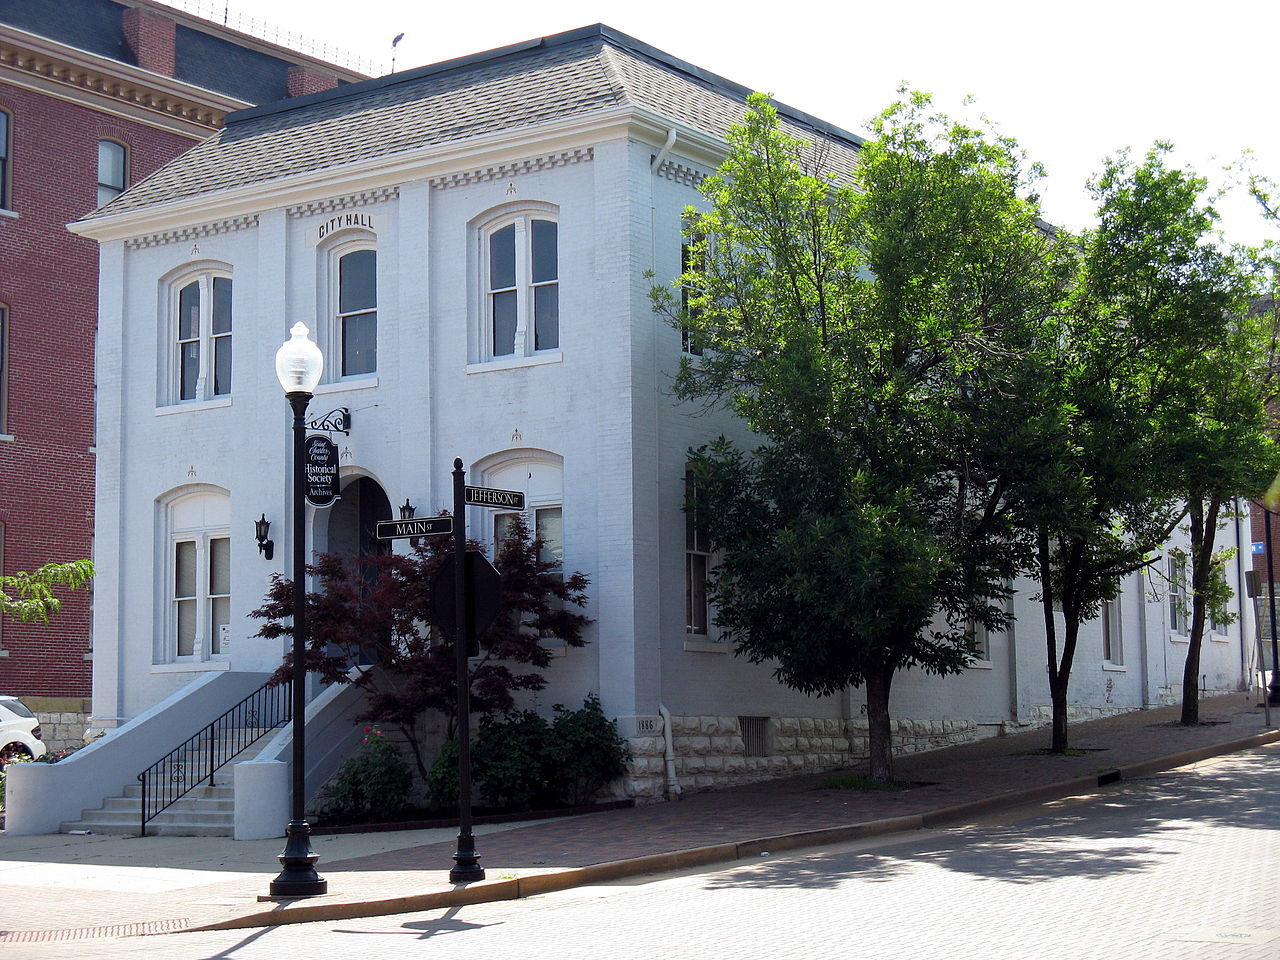 The Old City Hall Building was erected in 1886 and has been the home of the St. Charles County Historical Society since 1982.